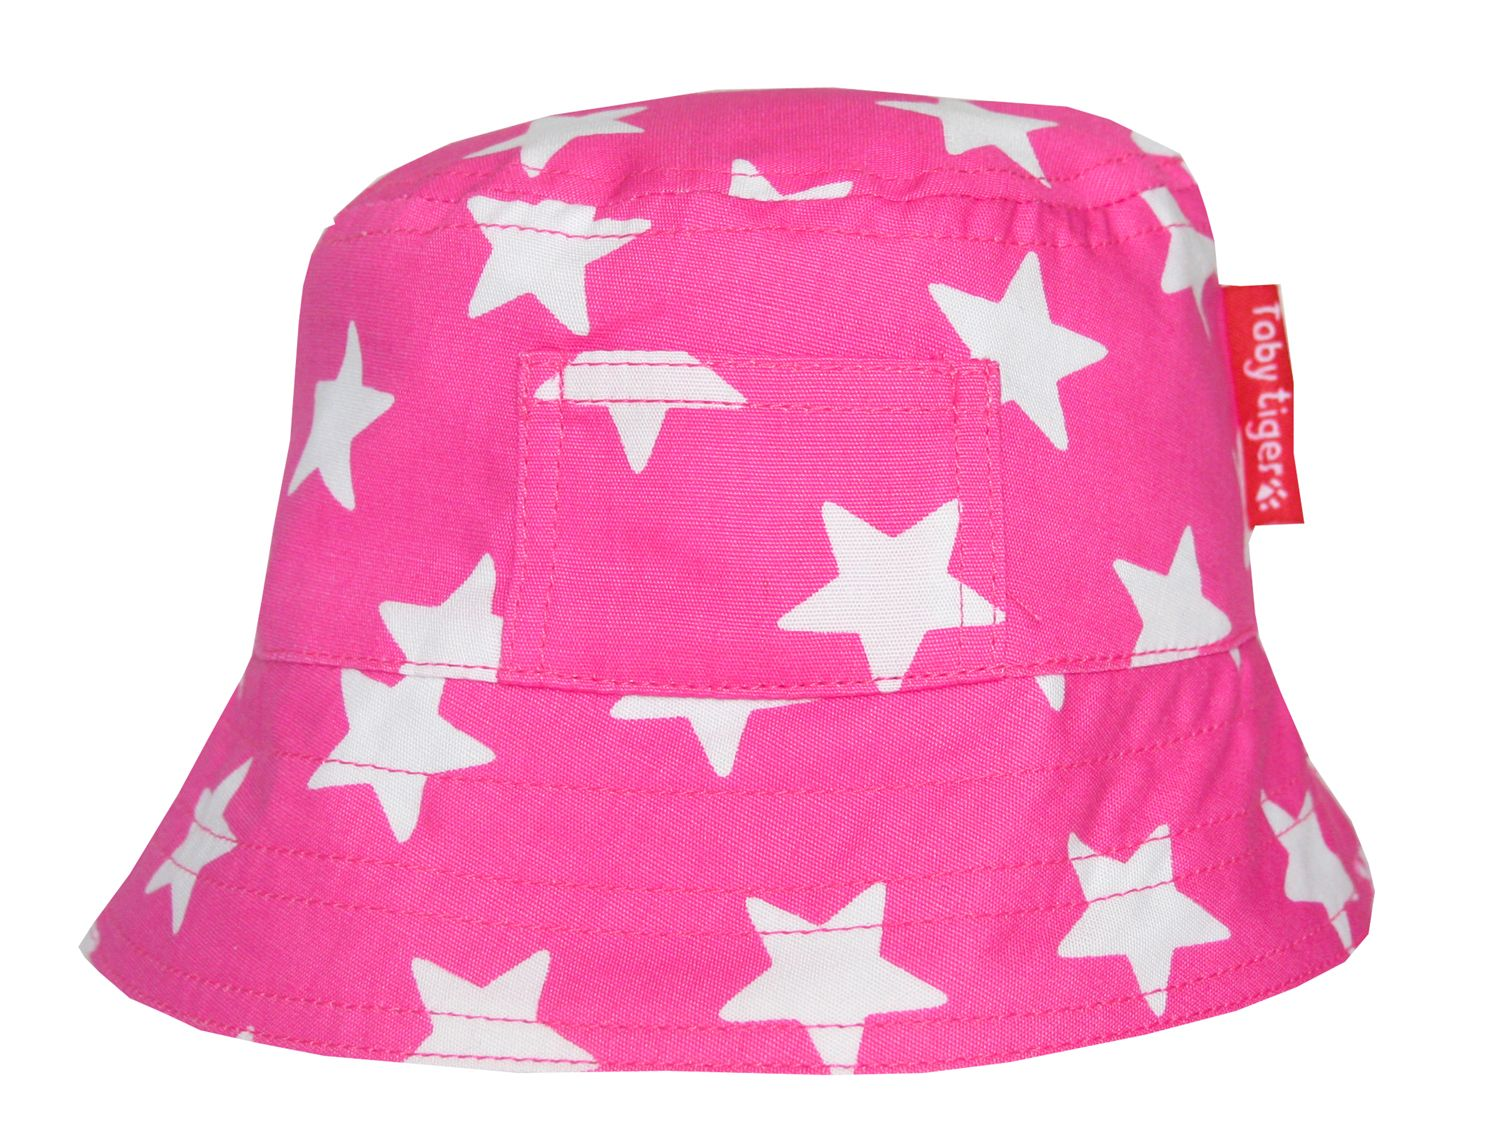 Toby Tiger Toby Tiger Girl`s canvas sunhat in pink star, Pink